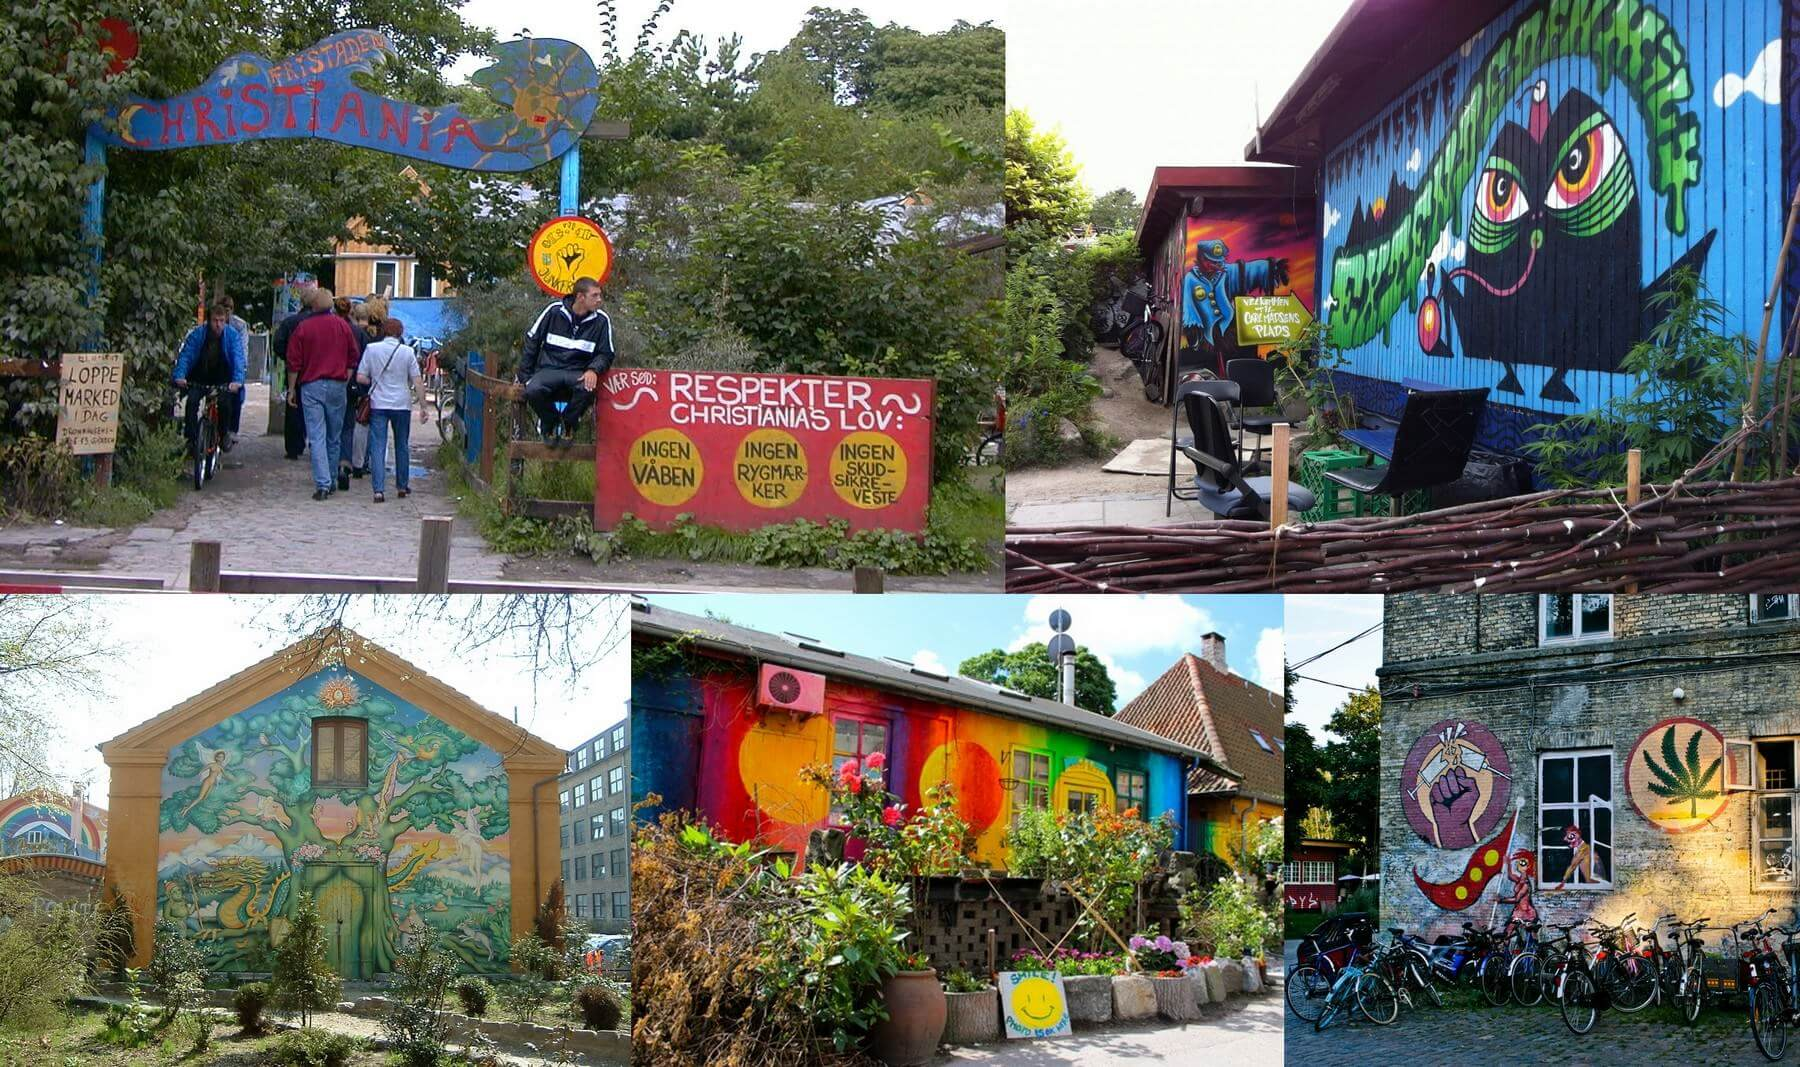 Barrio hippy de Christiana, Copenhague (Dinamarca)